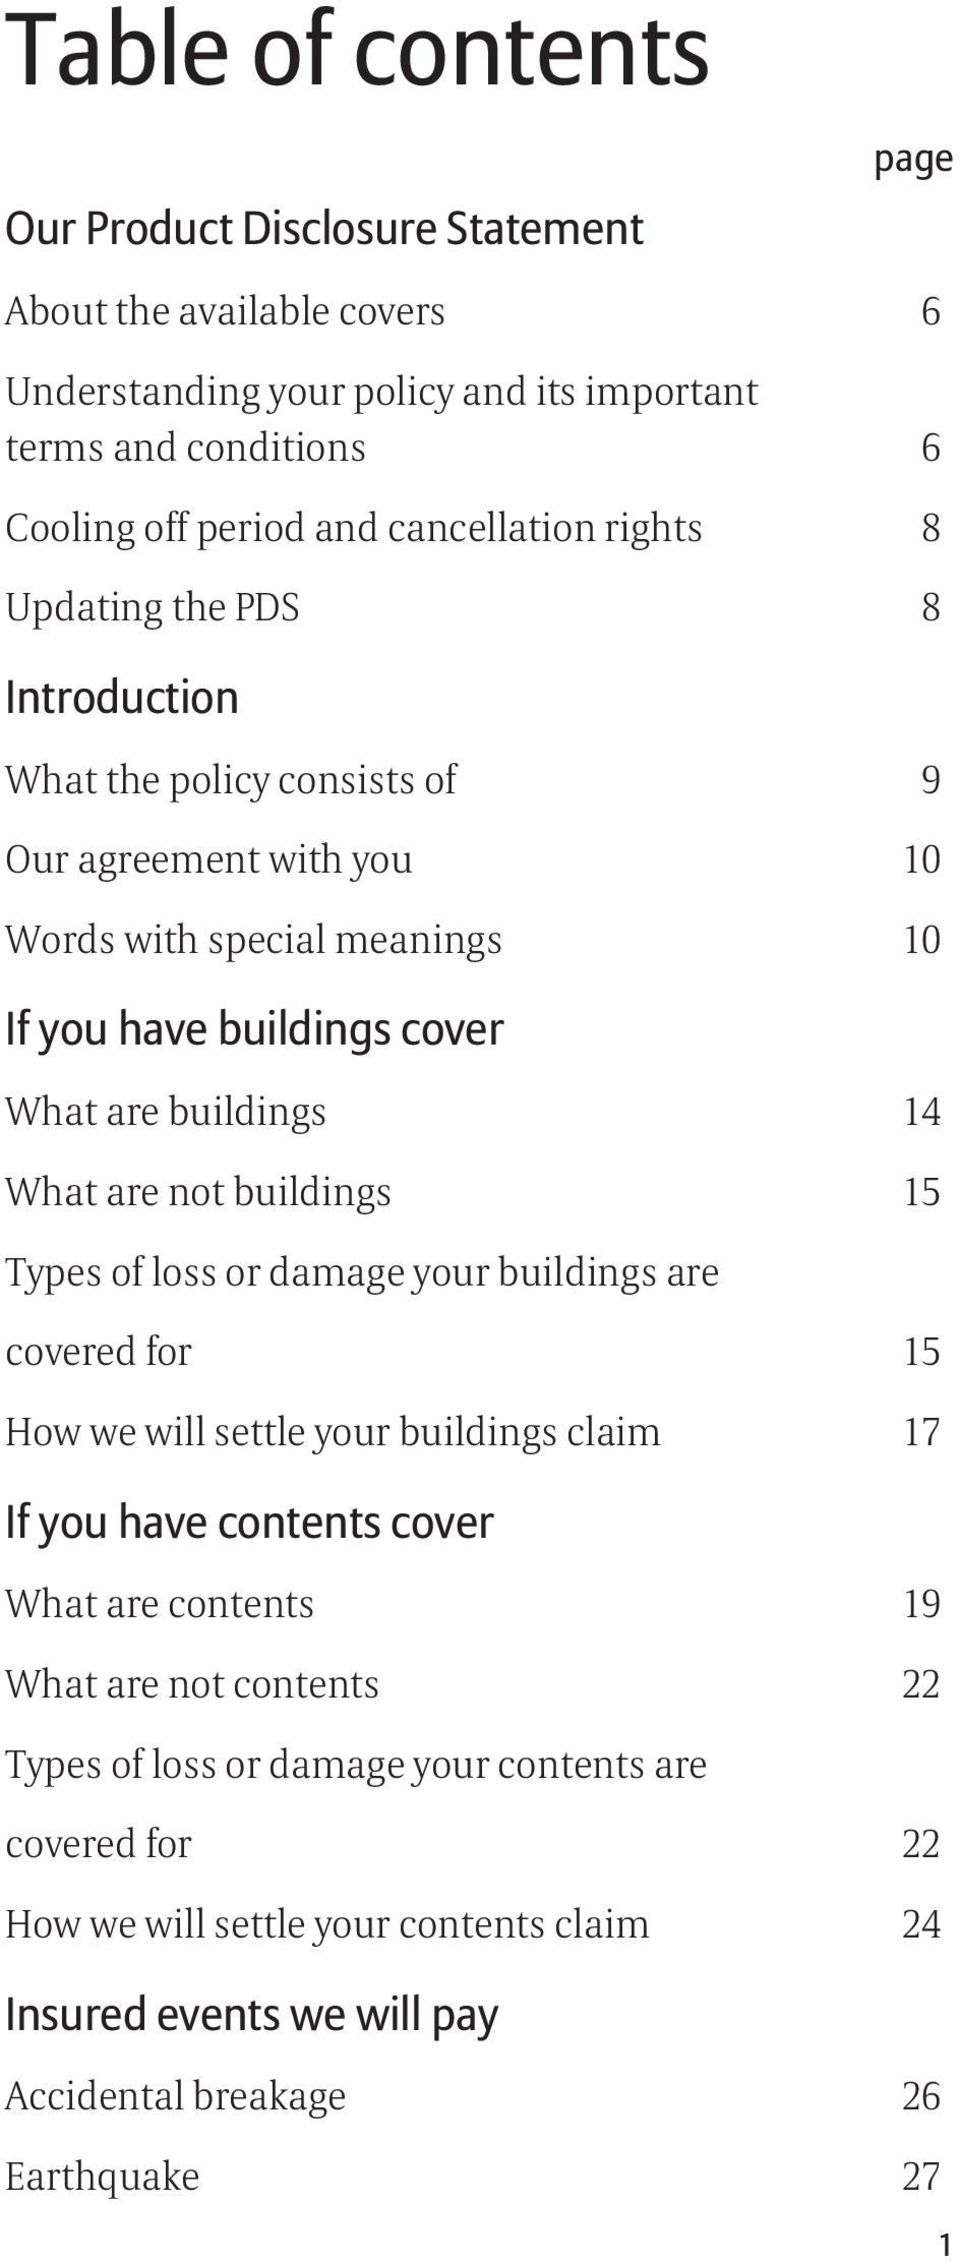 buildings 14 What are not buildings 15 Types of loss or damage your buildings are covered for 15 How we will settle your buildings claim 17 If you have contents cover What are